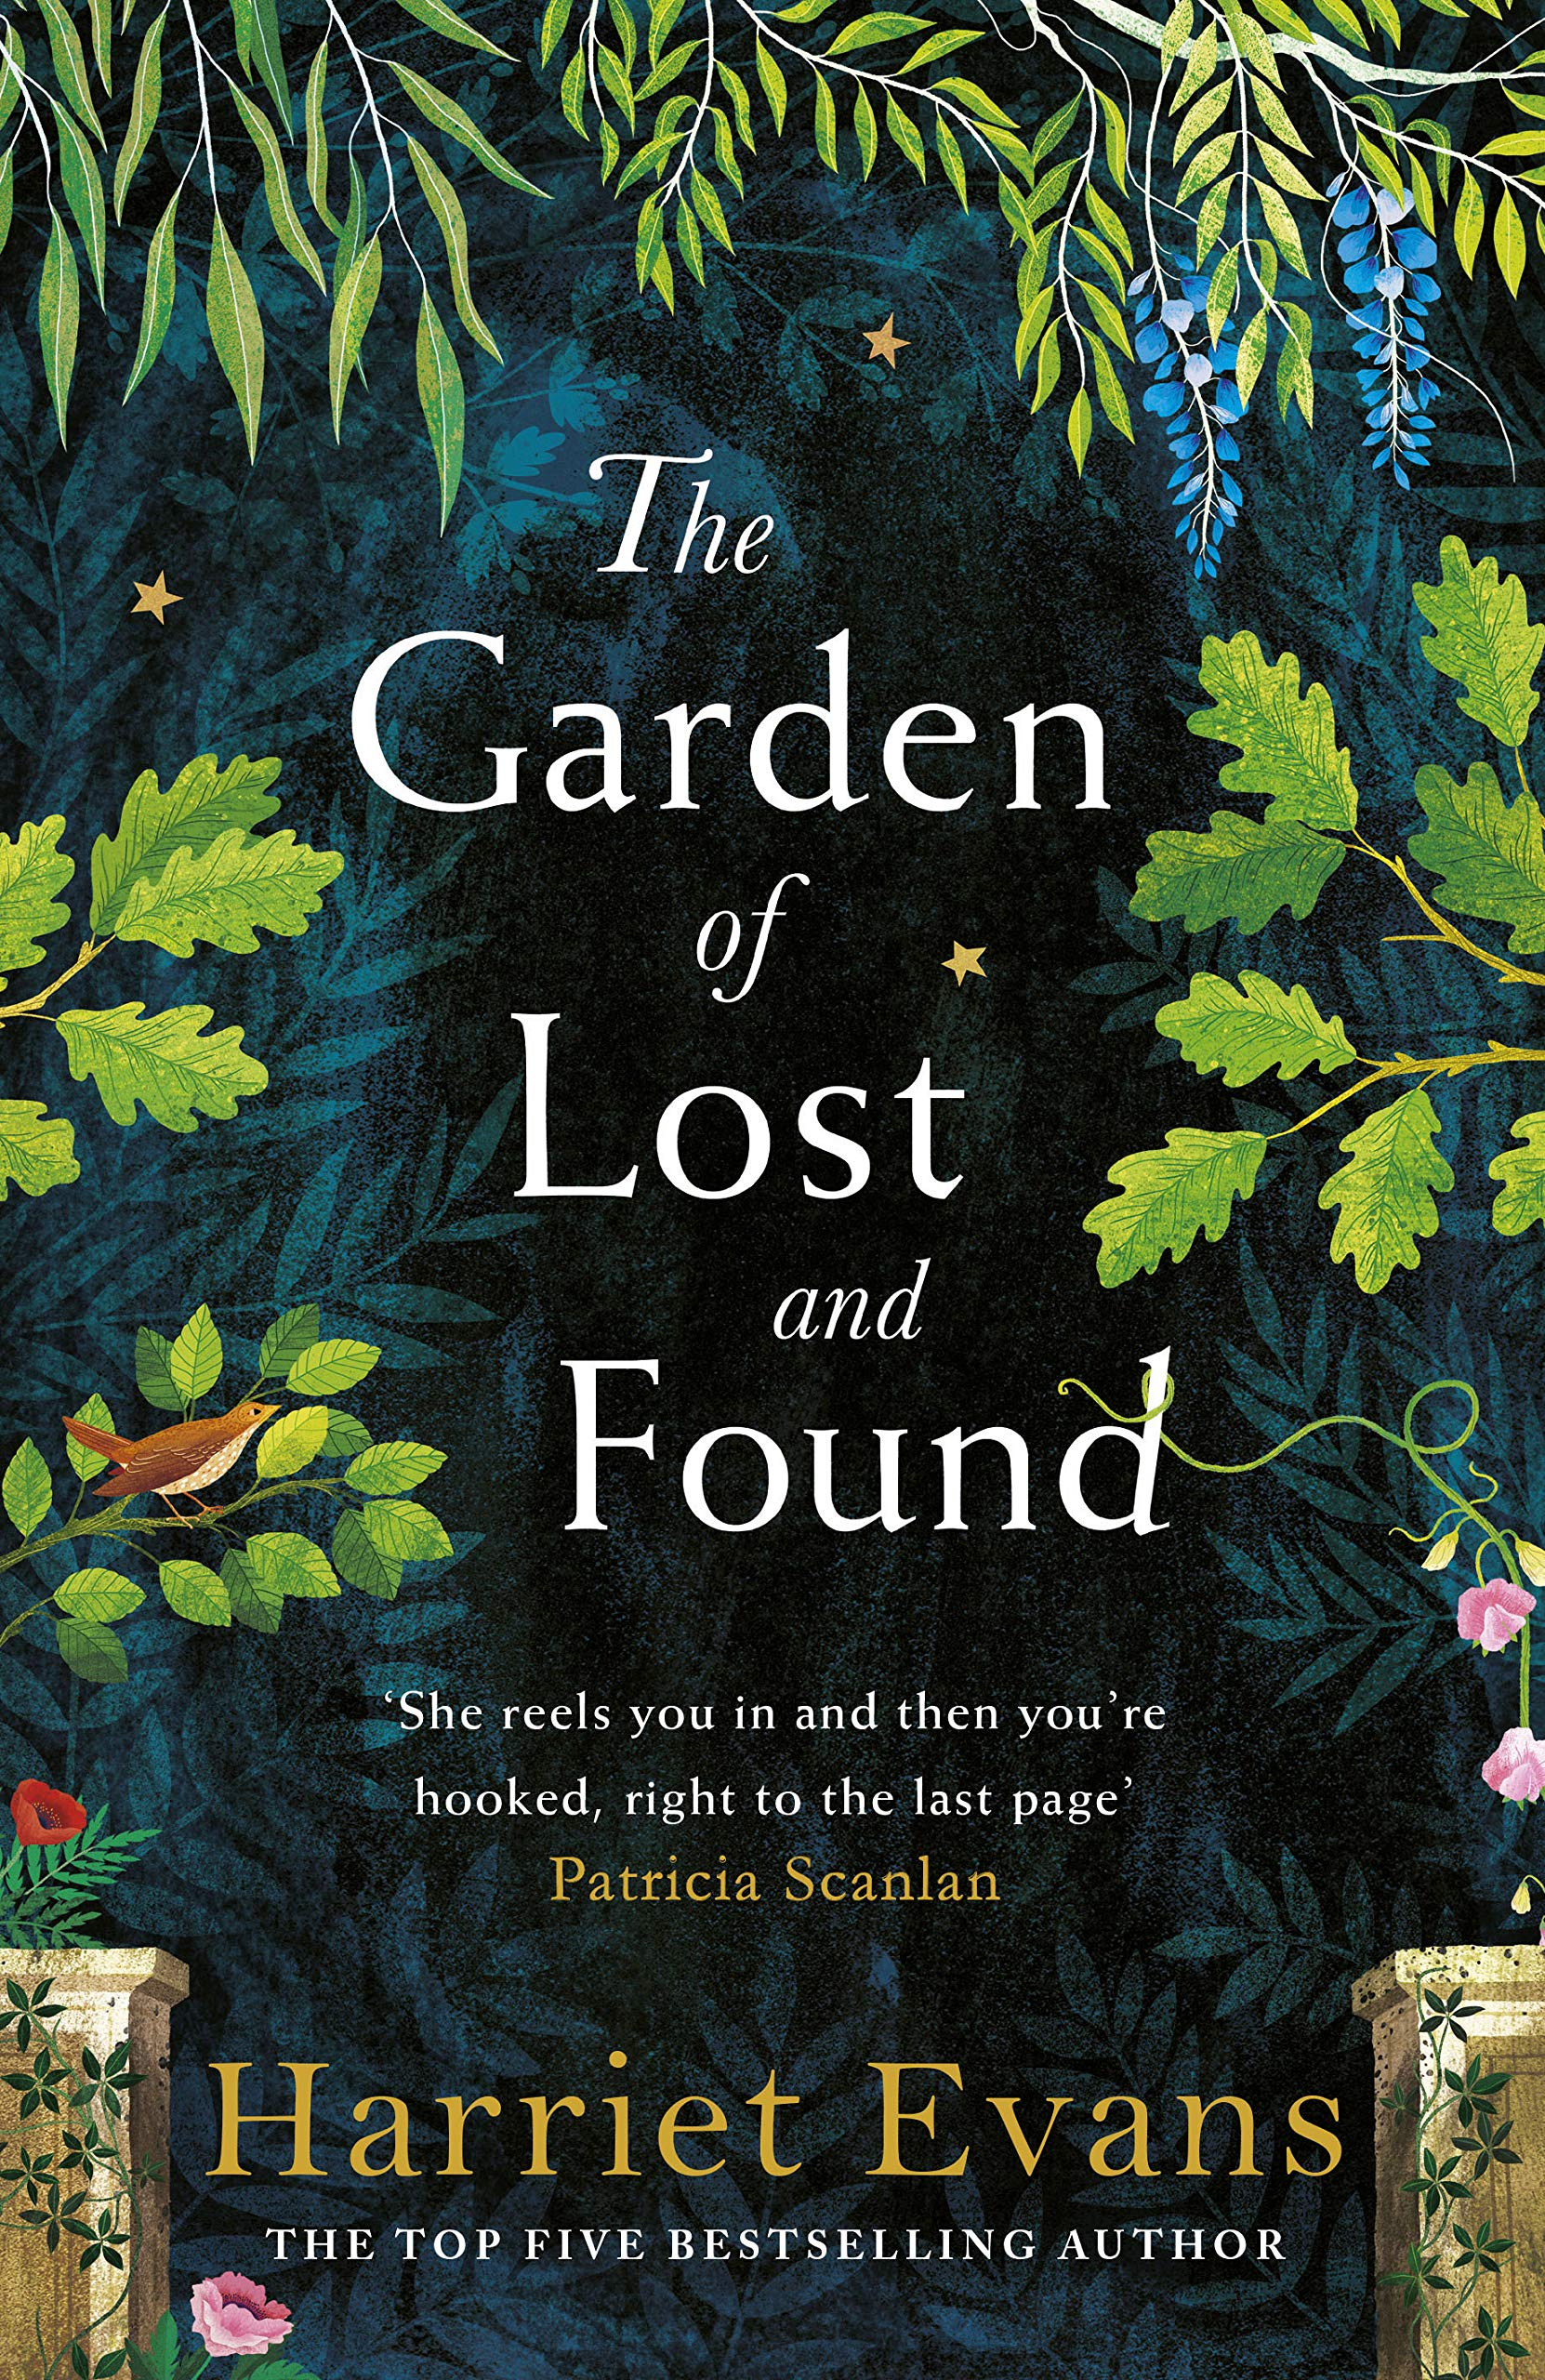 The Garden of Lost and Found, Harriet Evans